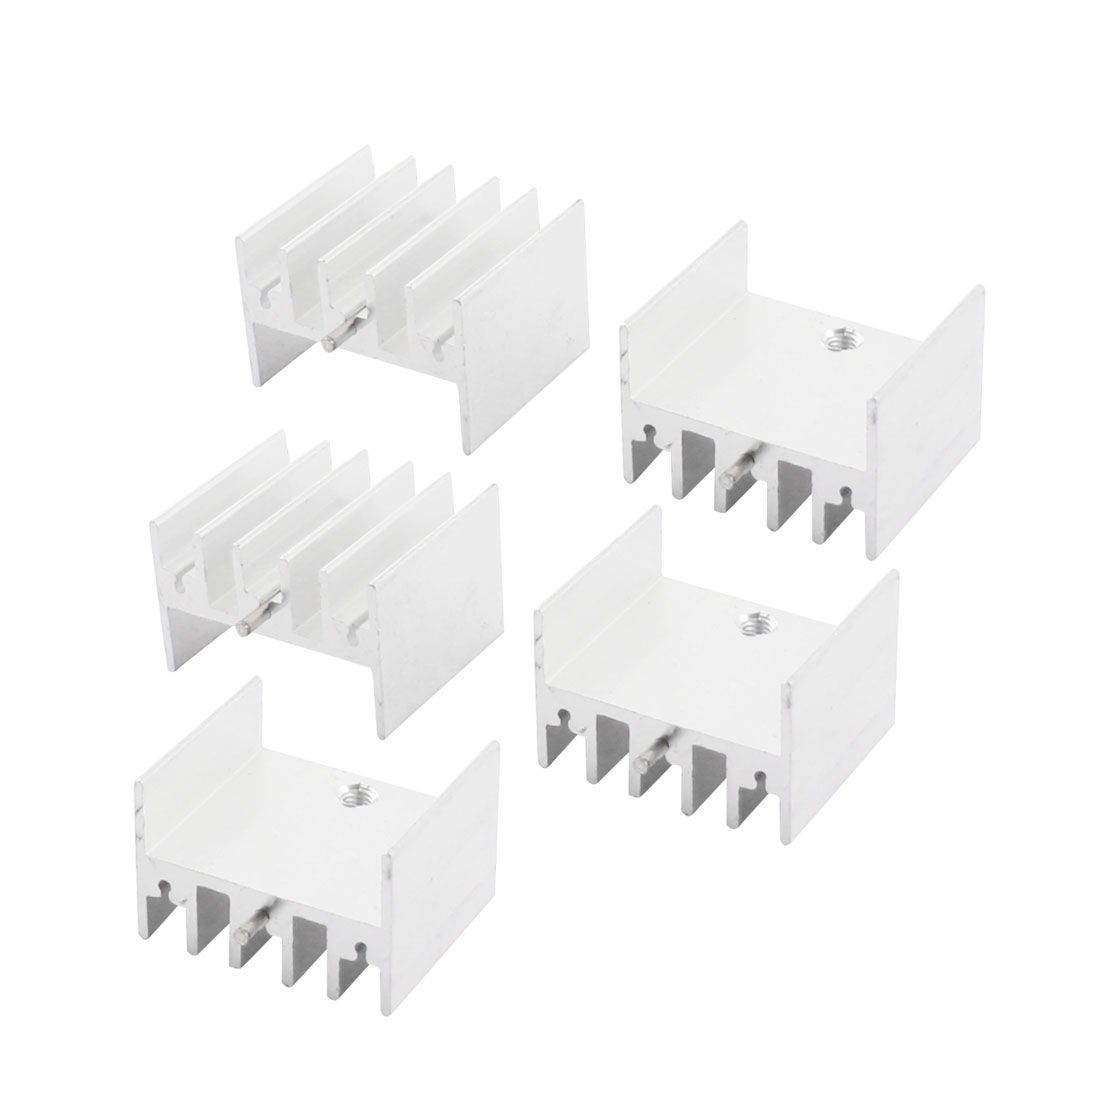 5Pcs 23x16x20mm Aluminium Radiator Fin Cooling Cooler Heatsink Heat Sink w Needle for PCB Board